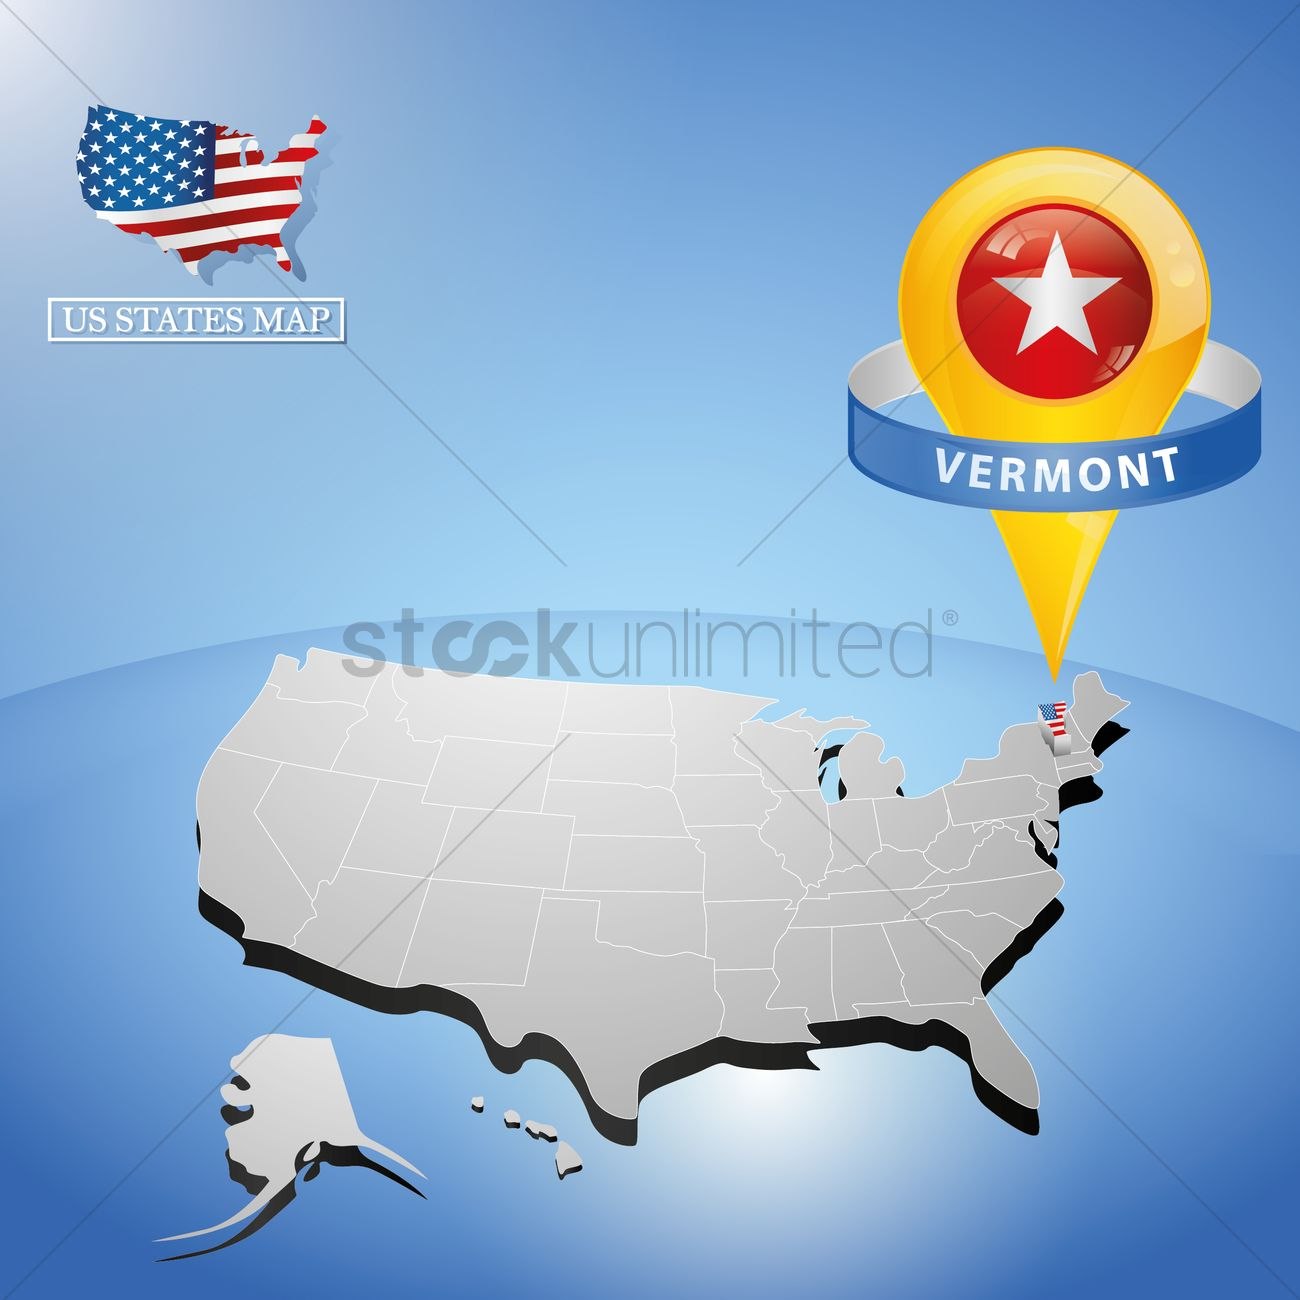 Vermont State On Map Of Usa Vector Image  StockUnlimited - Usa maps vermont